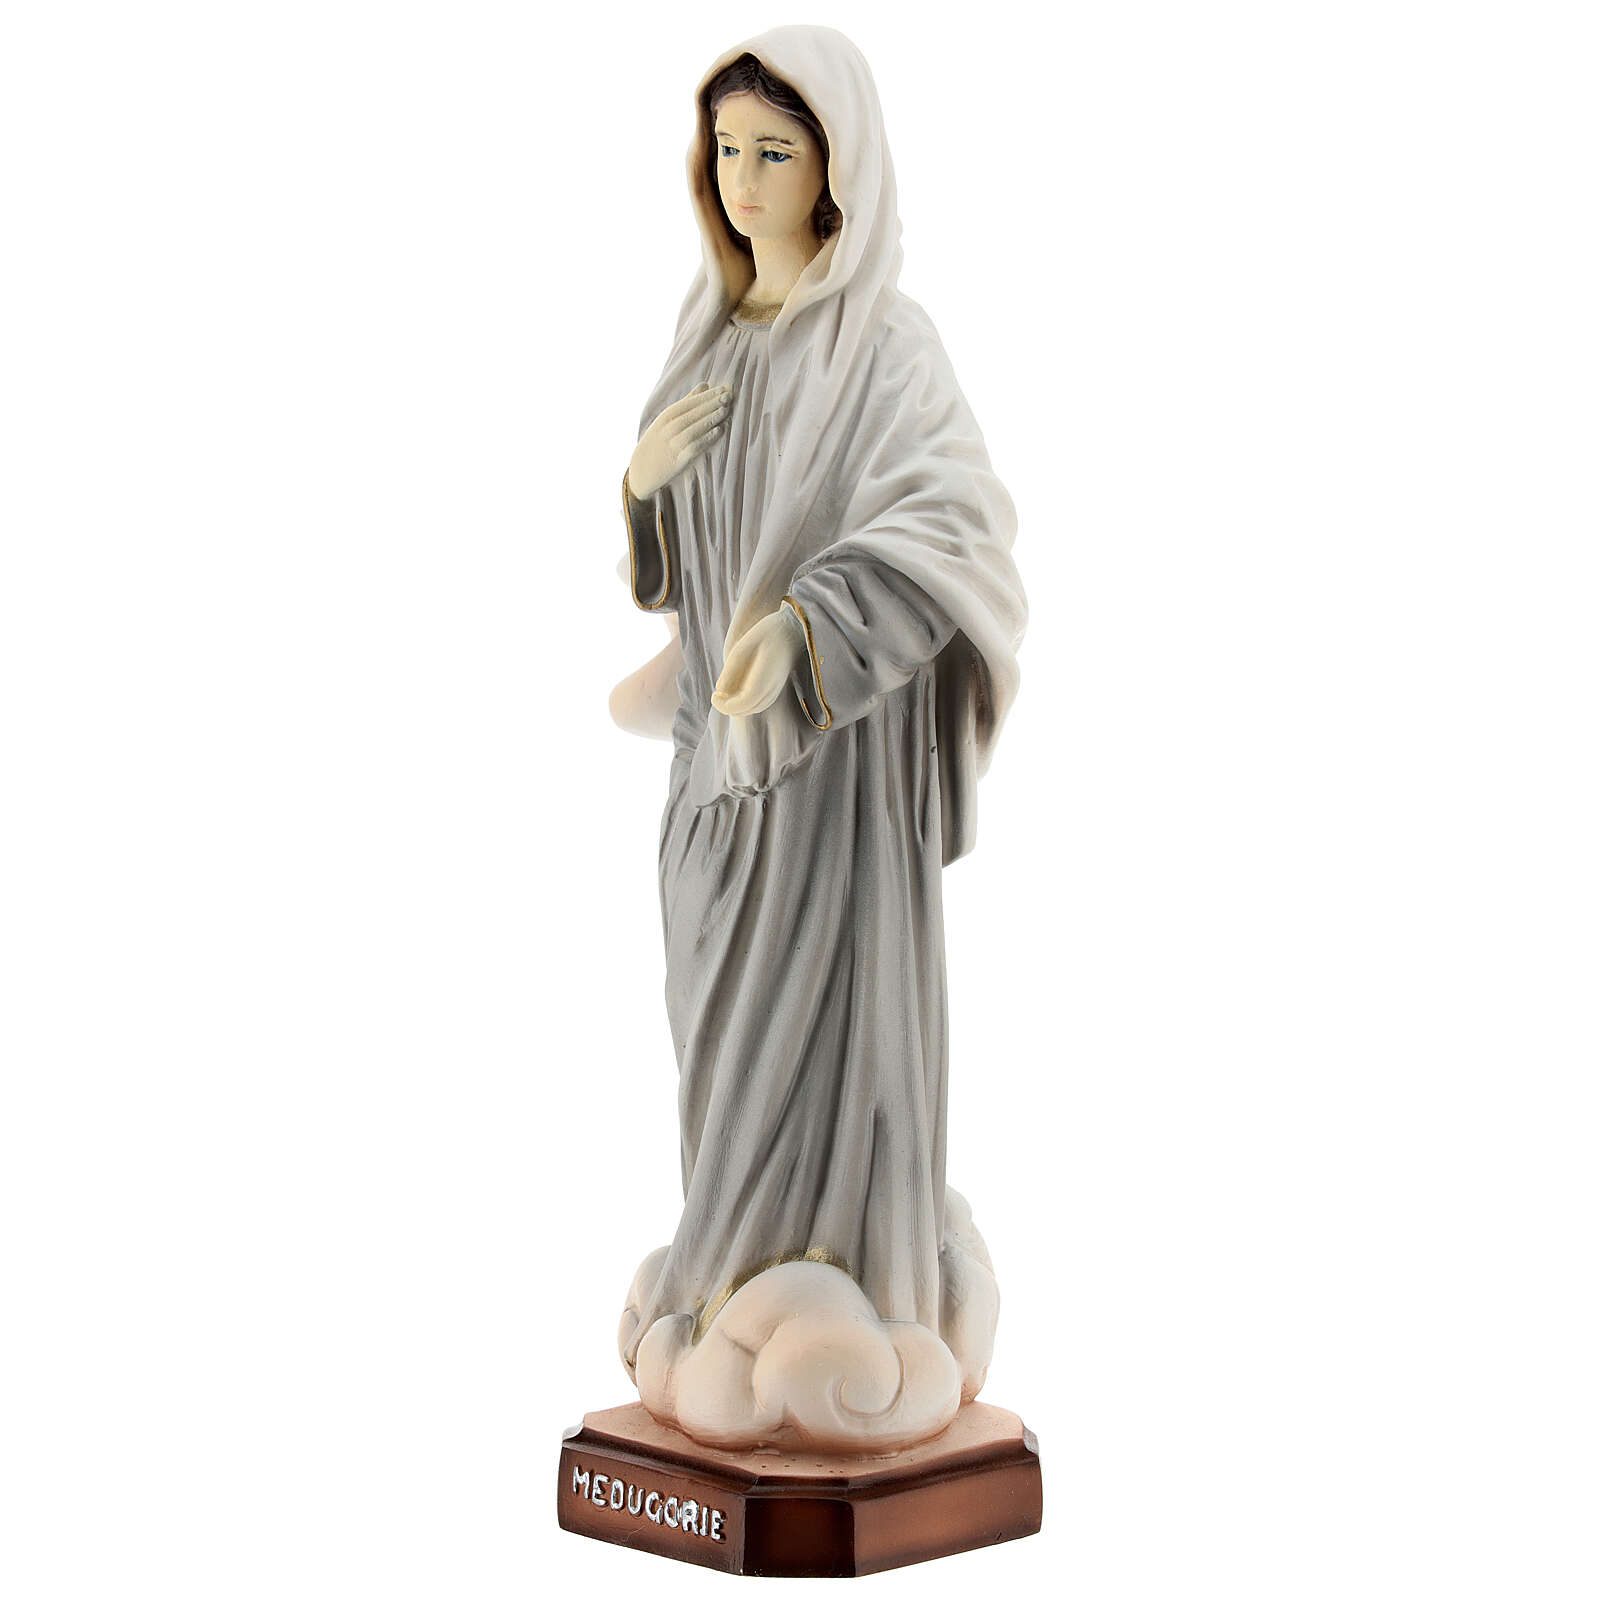 Lady of Medjugorje statue grey robes in reconstituted marble 20 cm 4